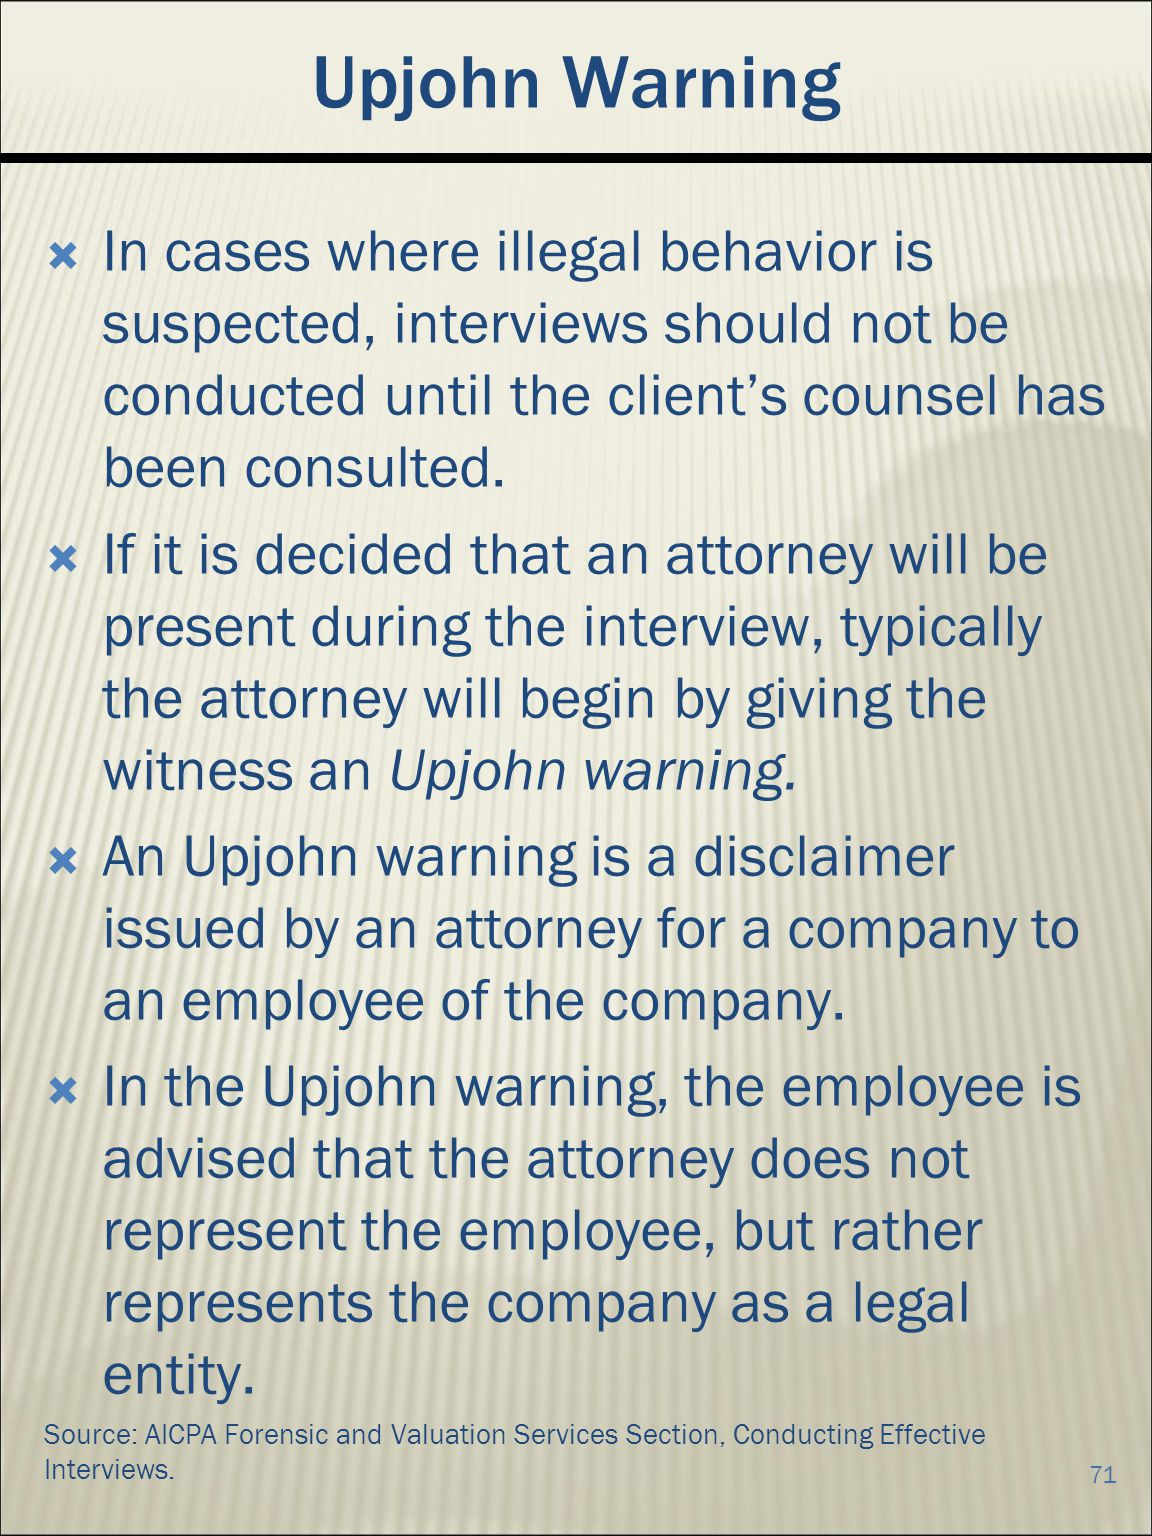 Upjohn Warning In cases where illegal behavior is suspected, interviews should not be conducted until the clients counsel has been consulted.